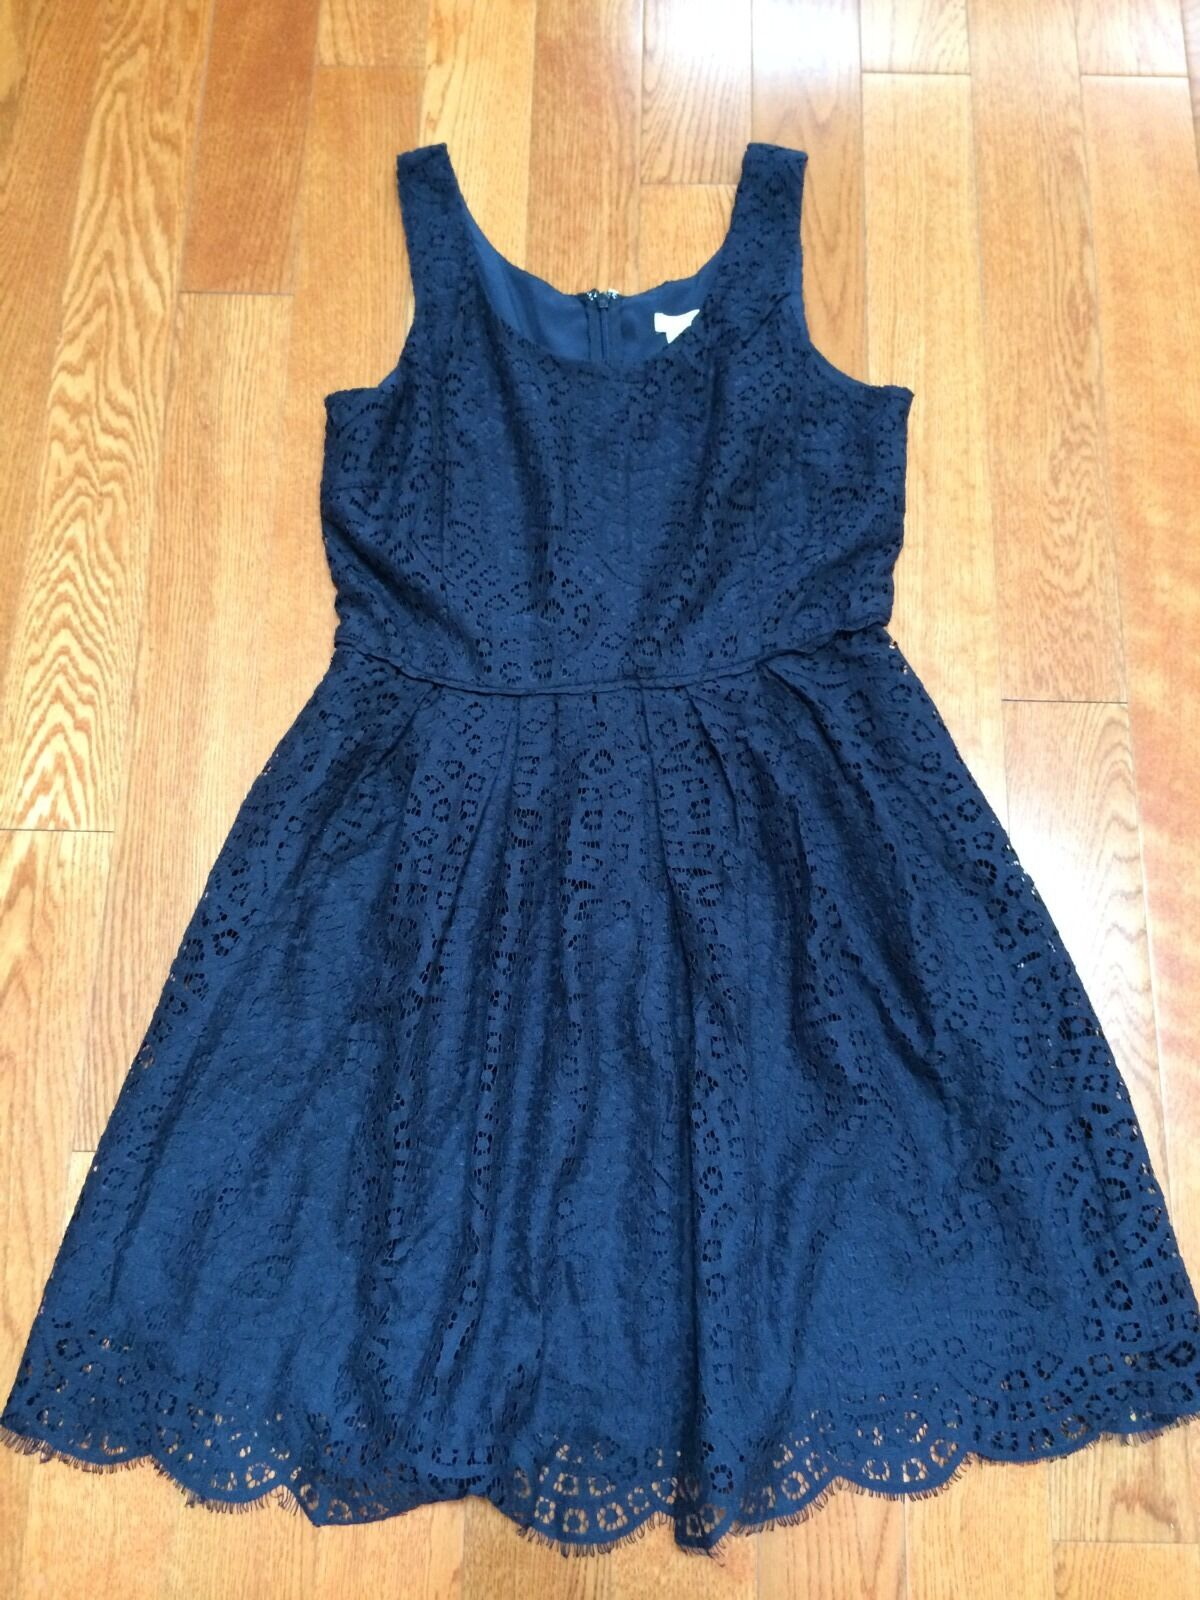 NWT J Crew Swirling Lace Dress Navy Size 6